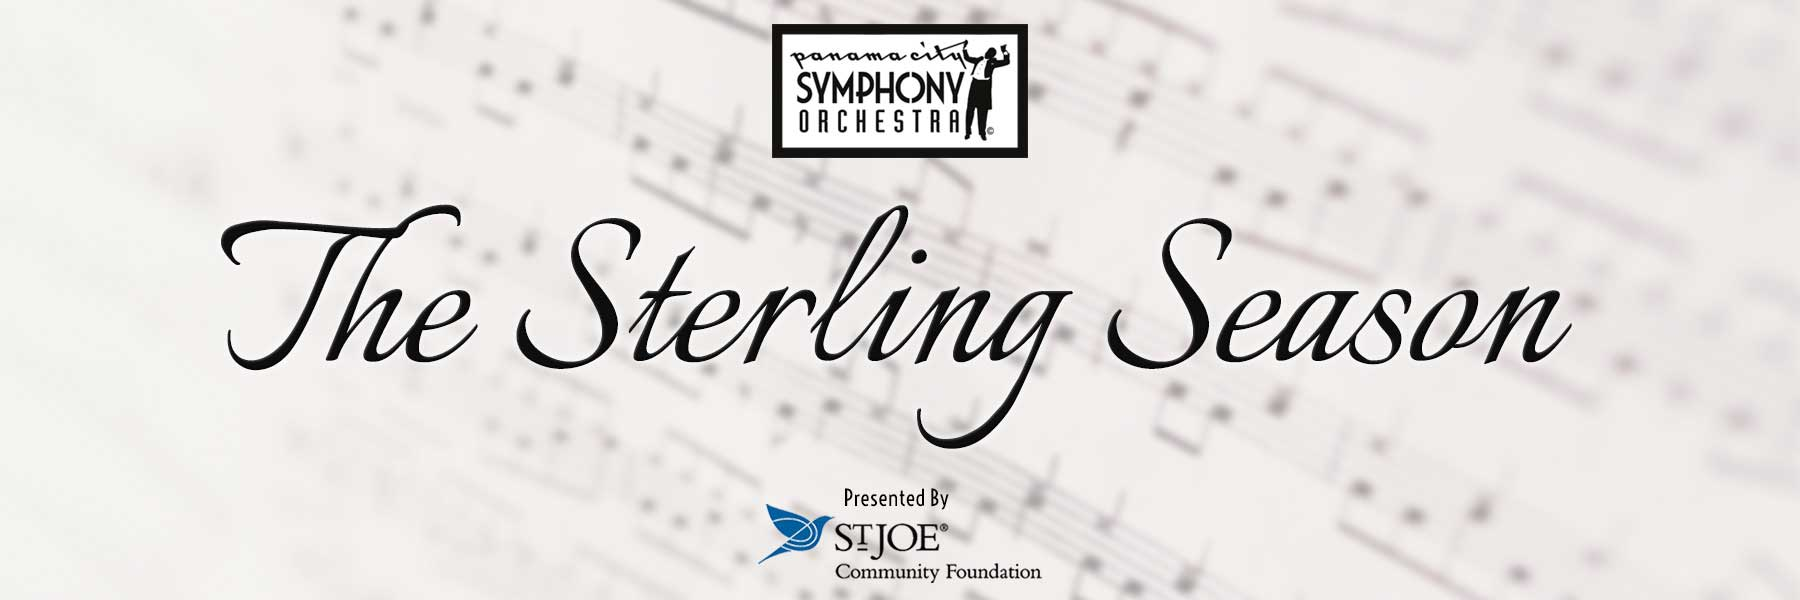 The Sterling Season - Presented by St Joe Community Foundation